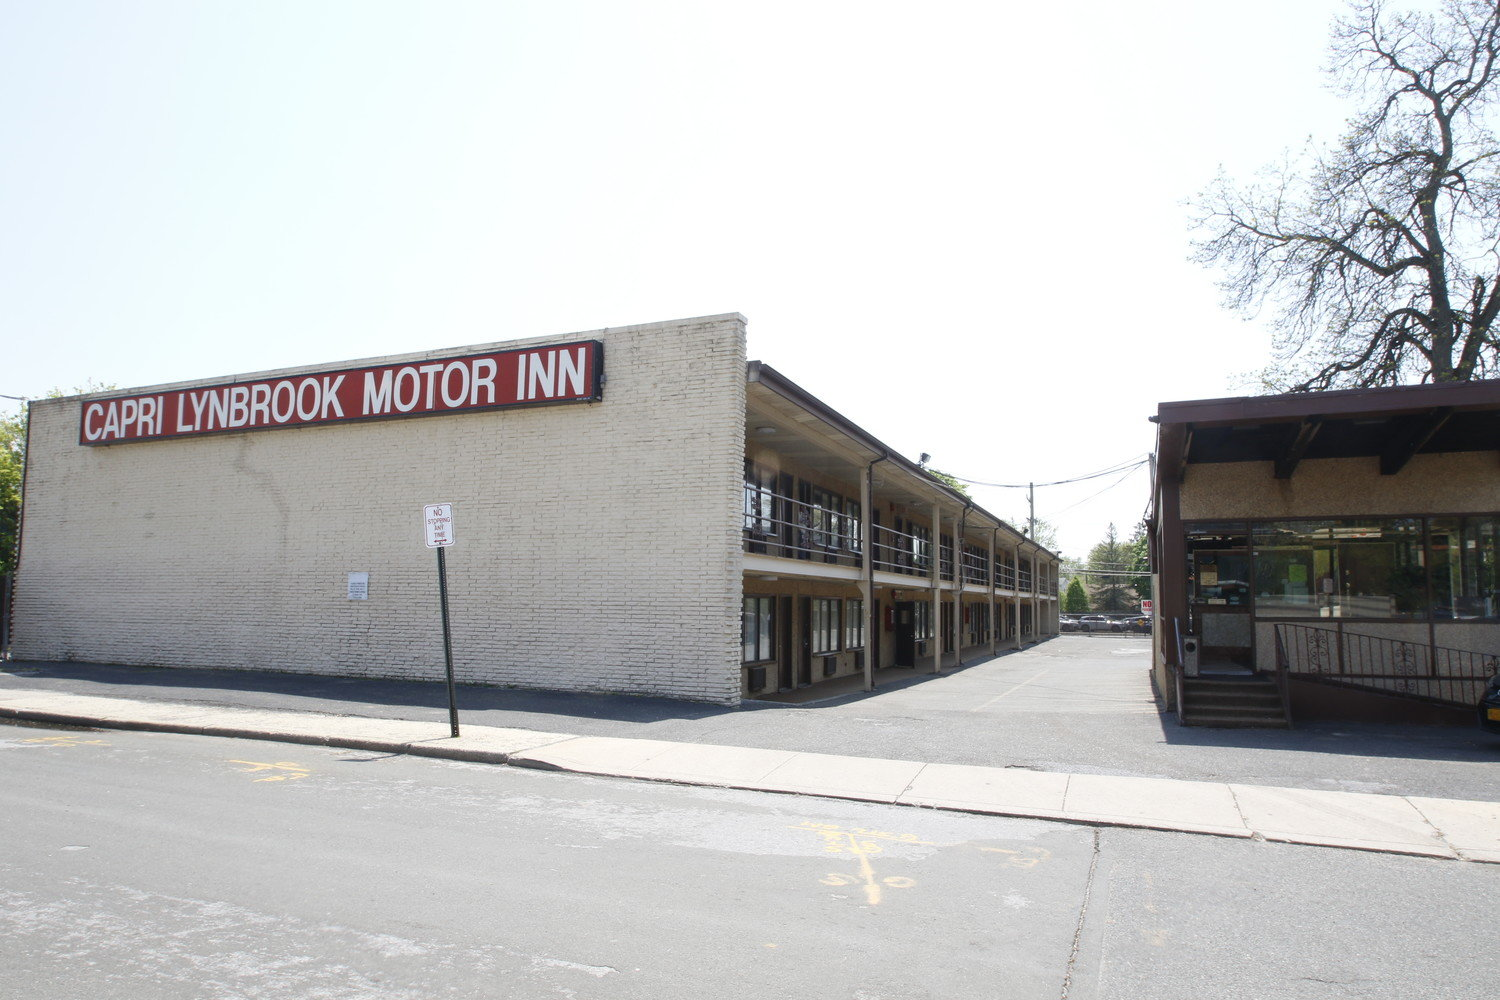 After years of controversy, the Capri Lynbrook Motor Inn has been sold to developer Anthony Bartone, who has scheduled an Aug. 20 open house to meet with residents to gather their views on redevelopment of the site.